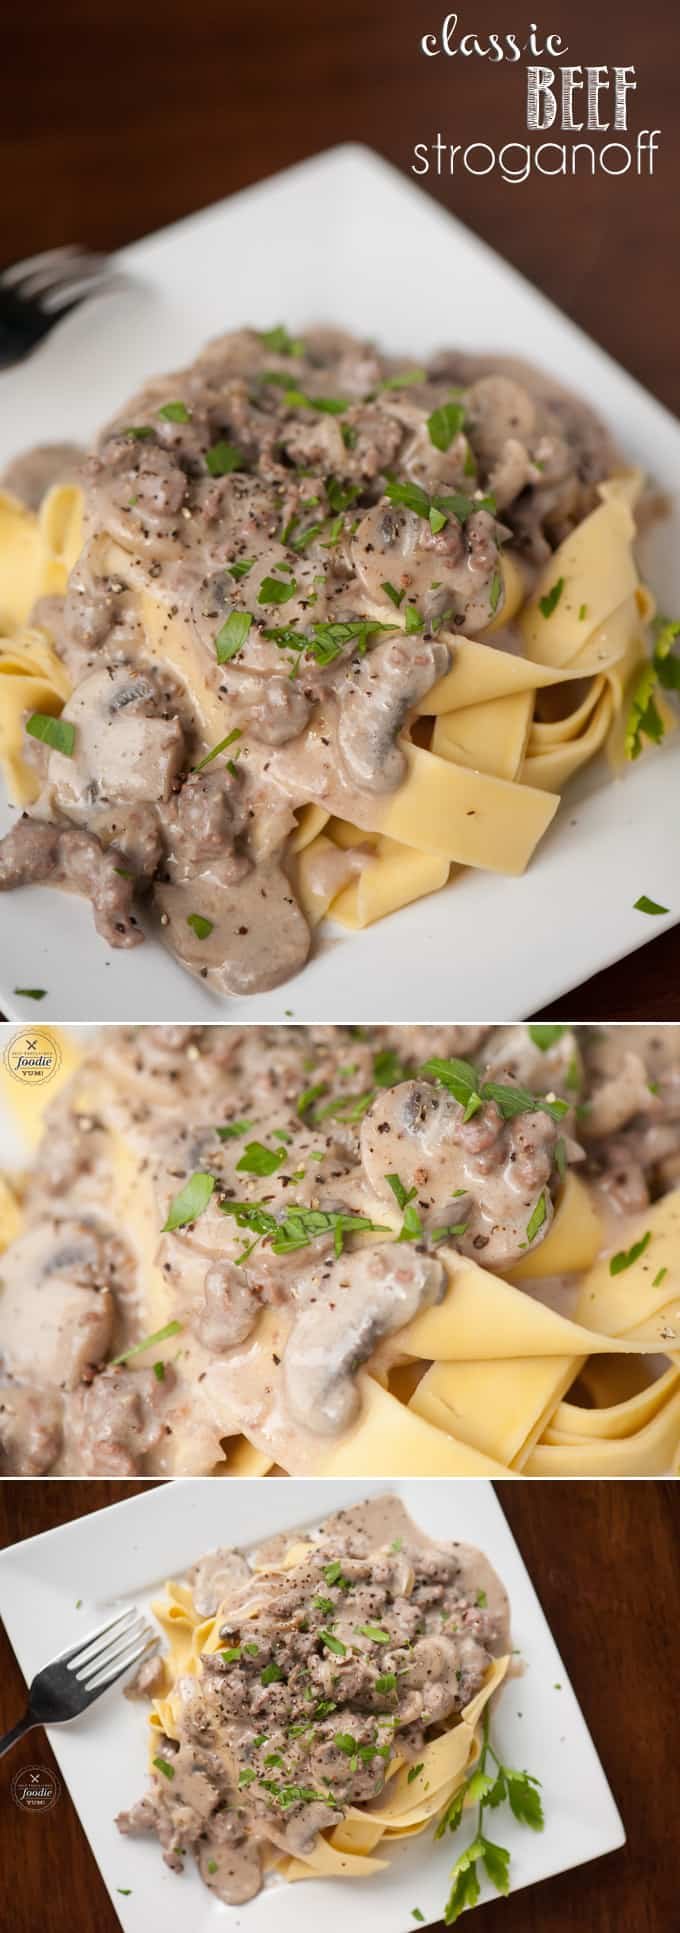 This Classic Beef Stroganoff with fresh mushrooms, beef sirloin steak, and egg noodles is the ultimate comfort food a family dinner time favorite!